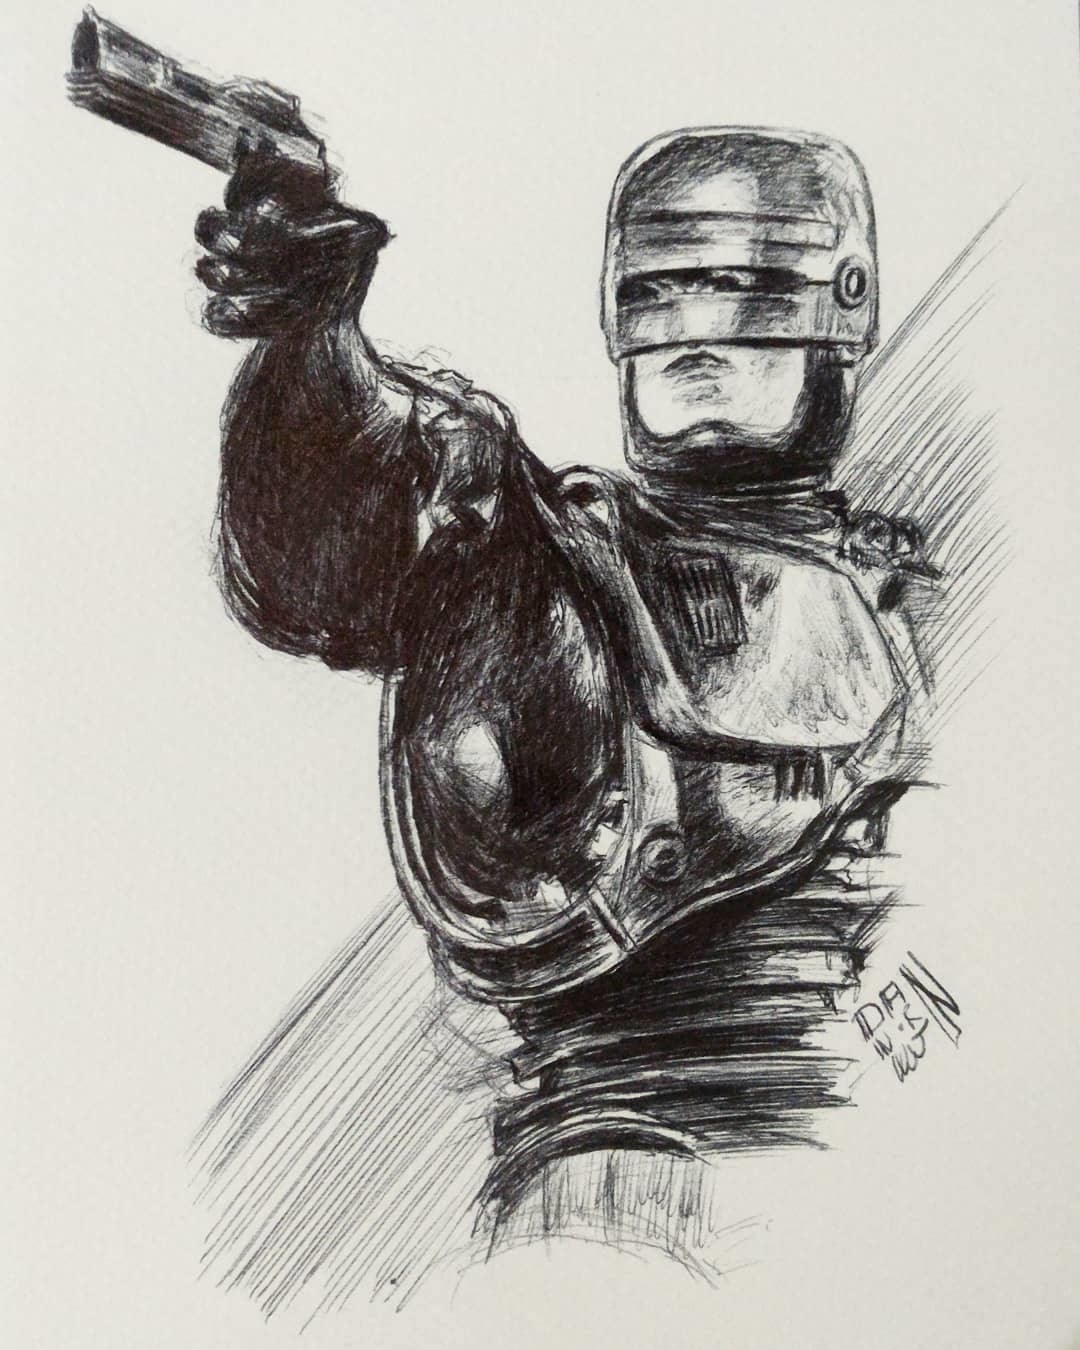 March Of Robots 10 - Robocop (1987). Bic Pen.